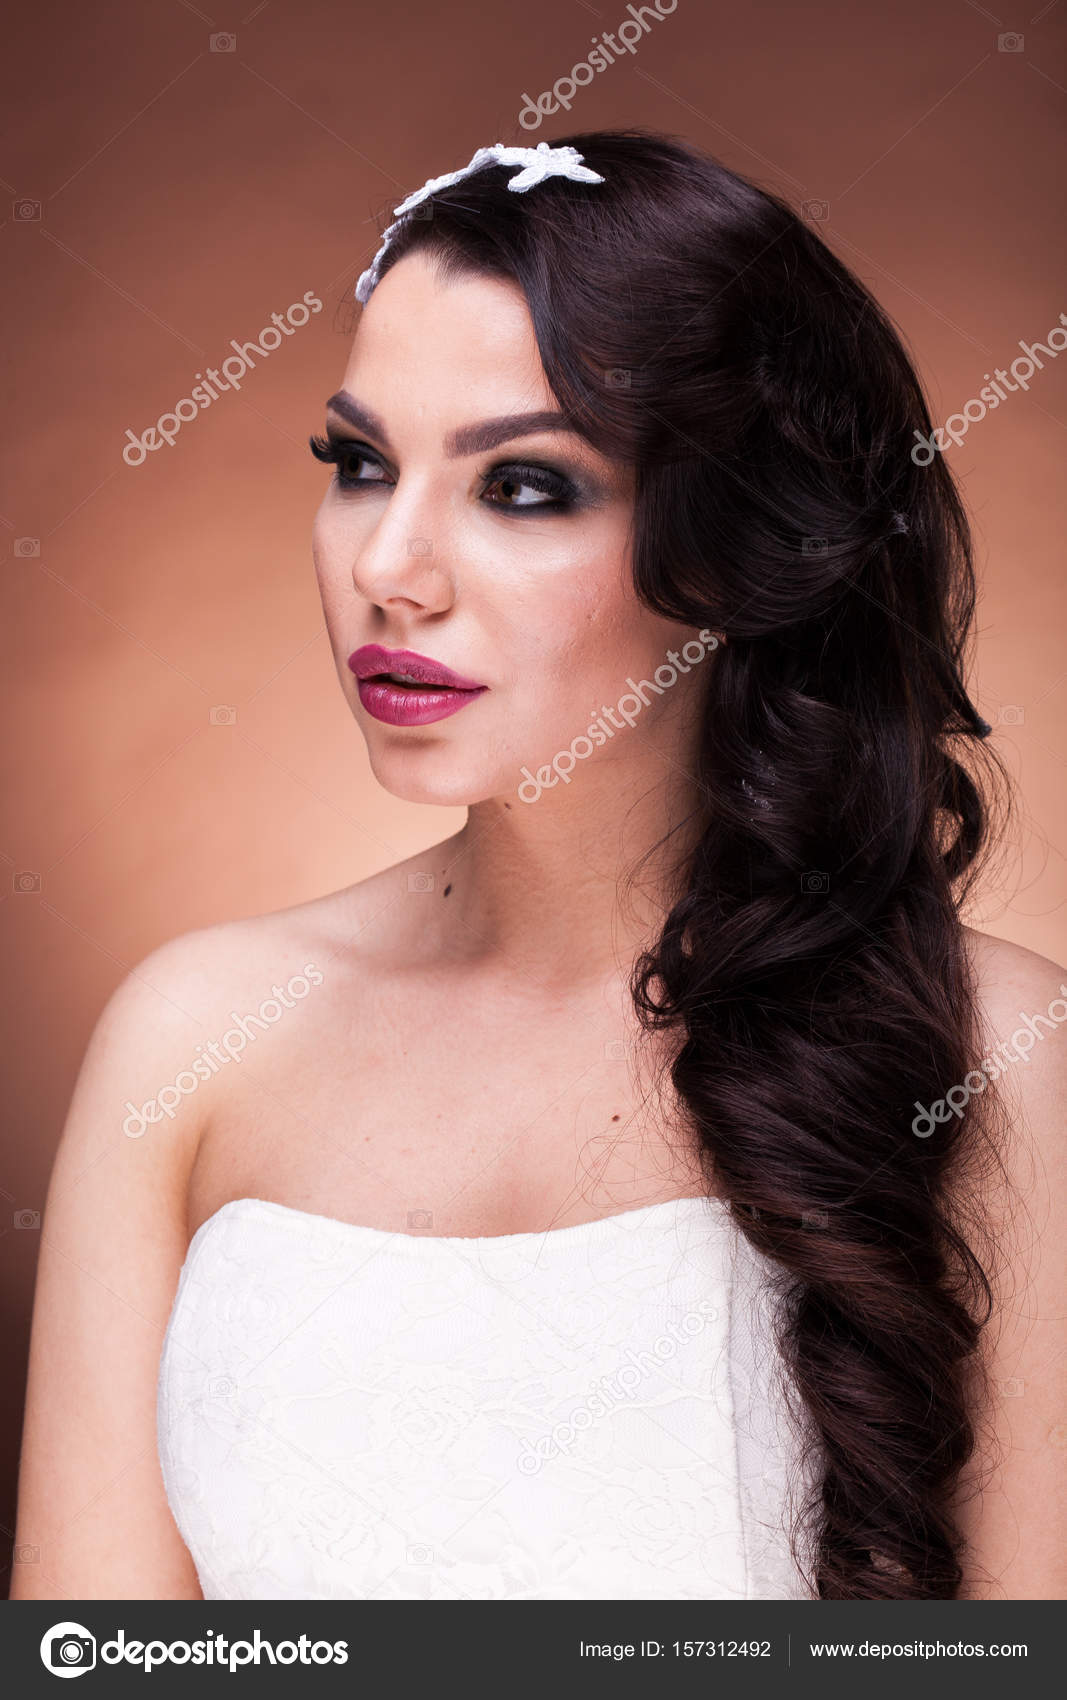 on trend hair styles profesyonel sa 231 ve makyaj moda gelin stok foto 5616 | depositphotos 157312492 stock photo fashion bride with professional hairstyle